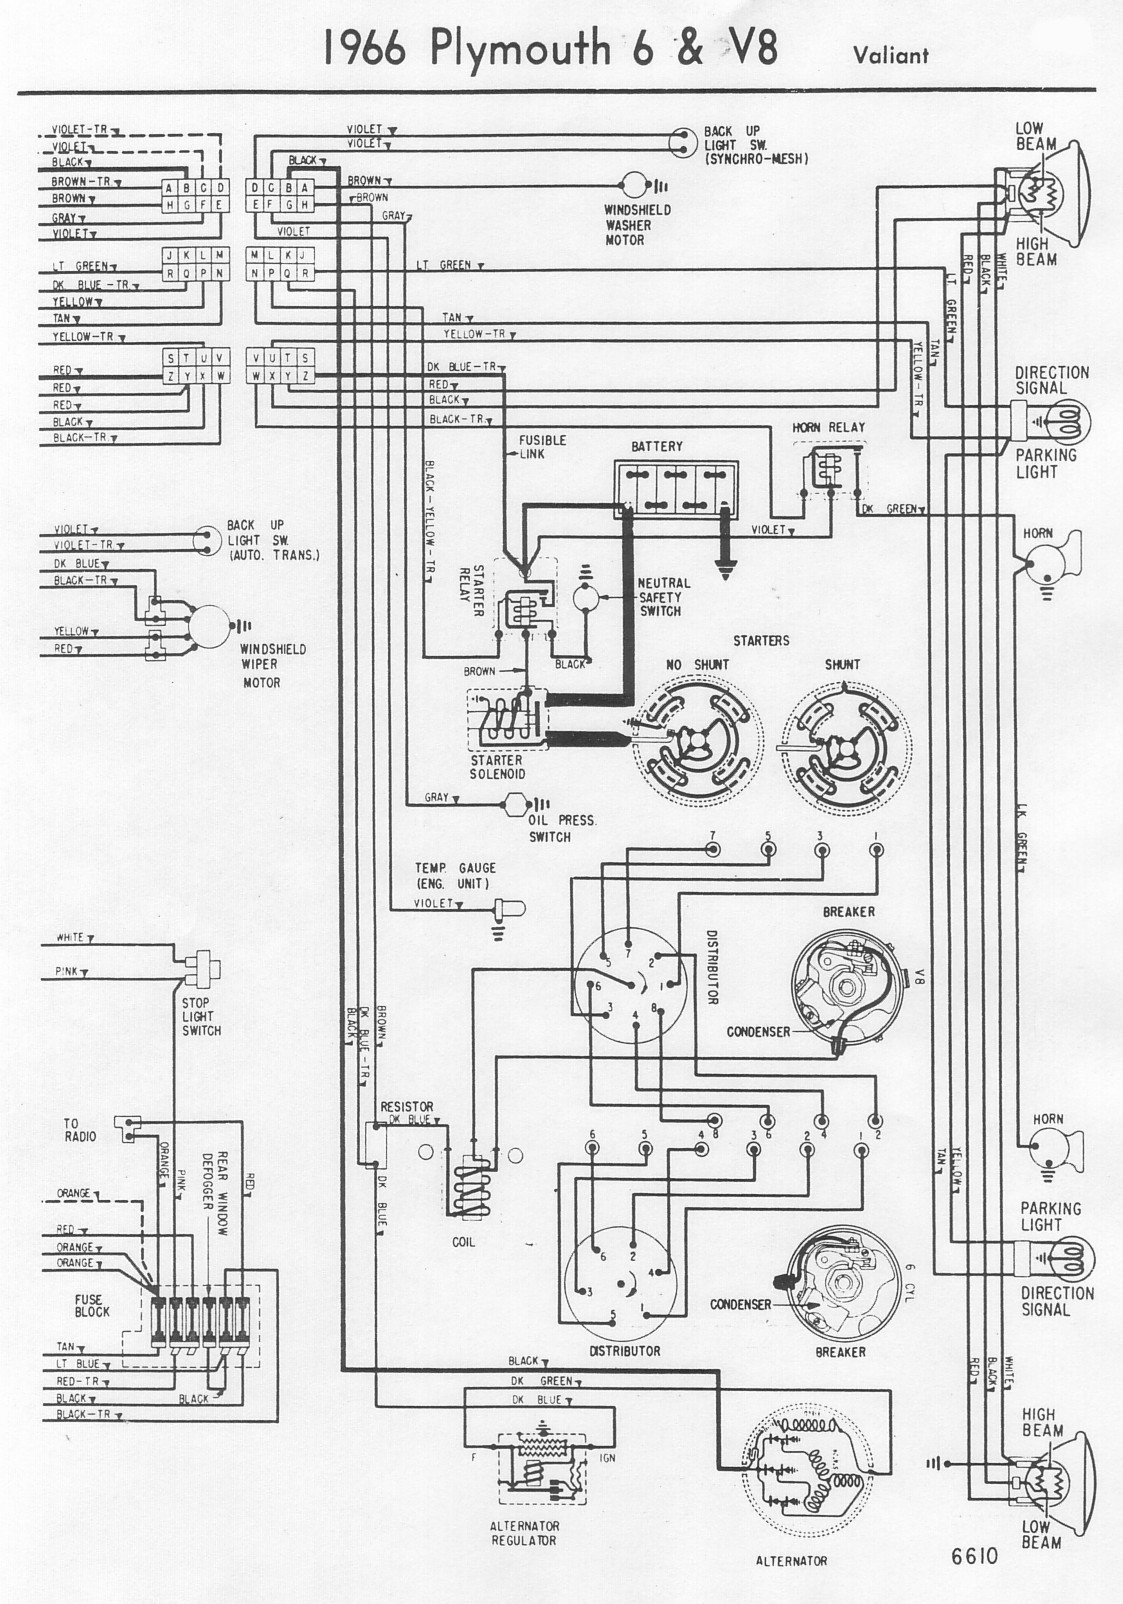 ltz 400 wiring diagram early valiant barracuda club vin decoding